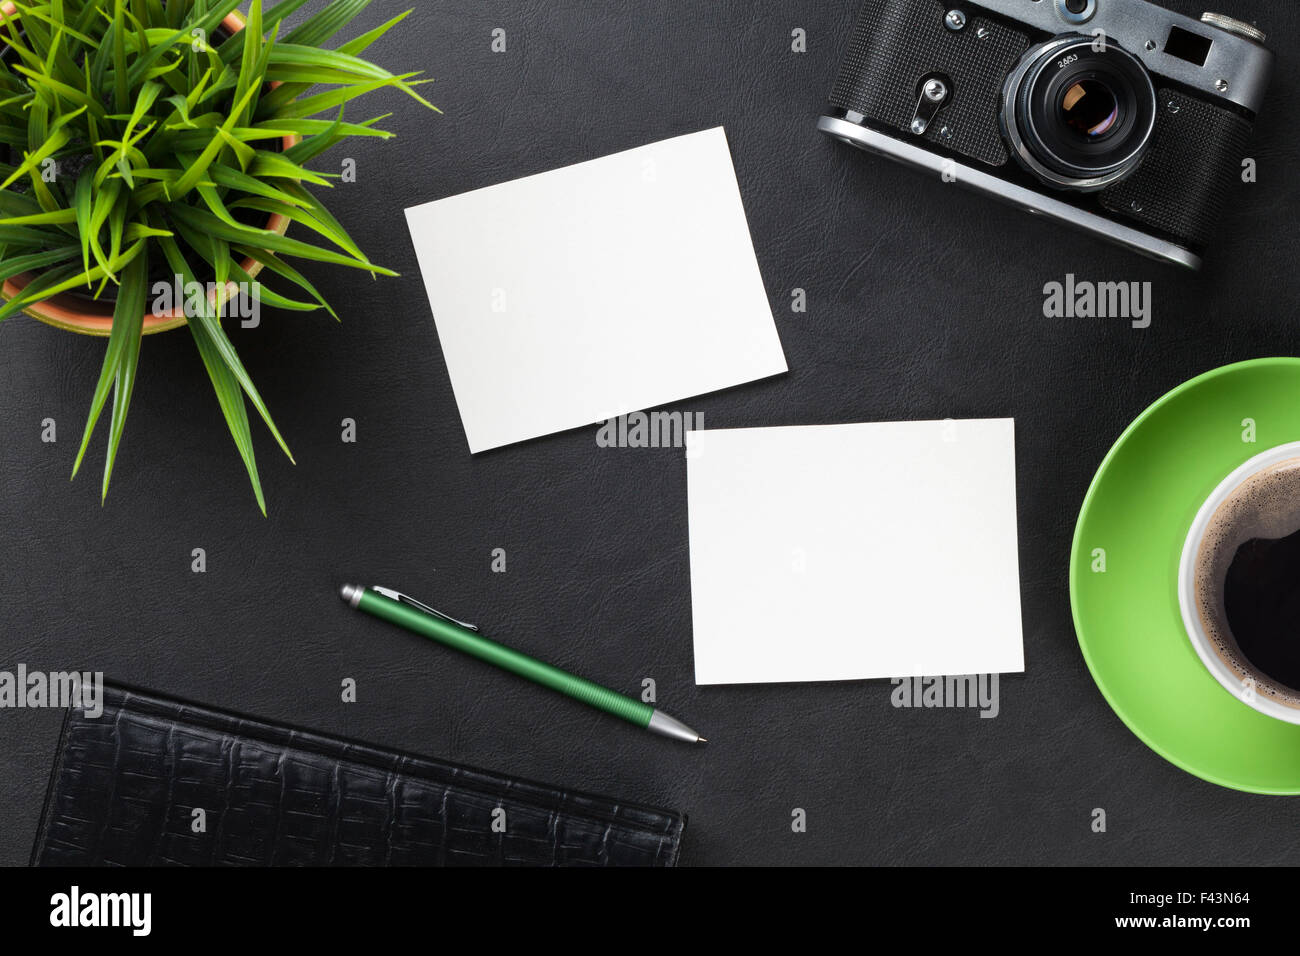 Office Desk With Photo Frame Stockfotos & Office Desk With Photo ...